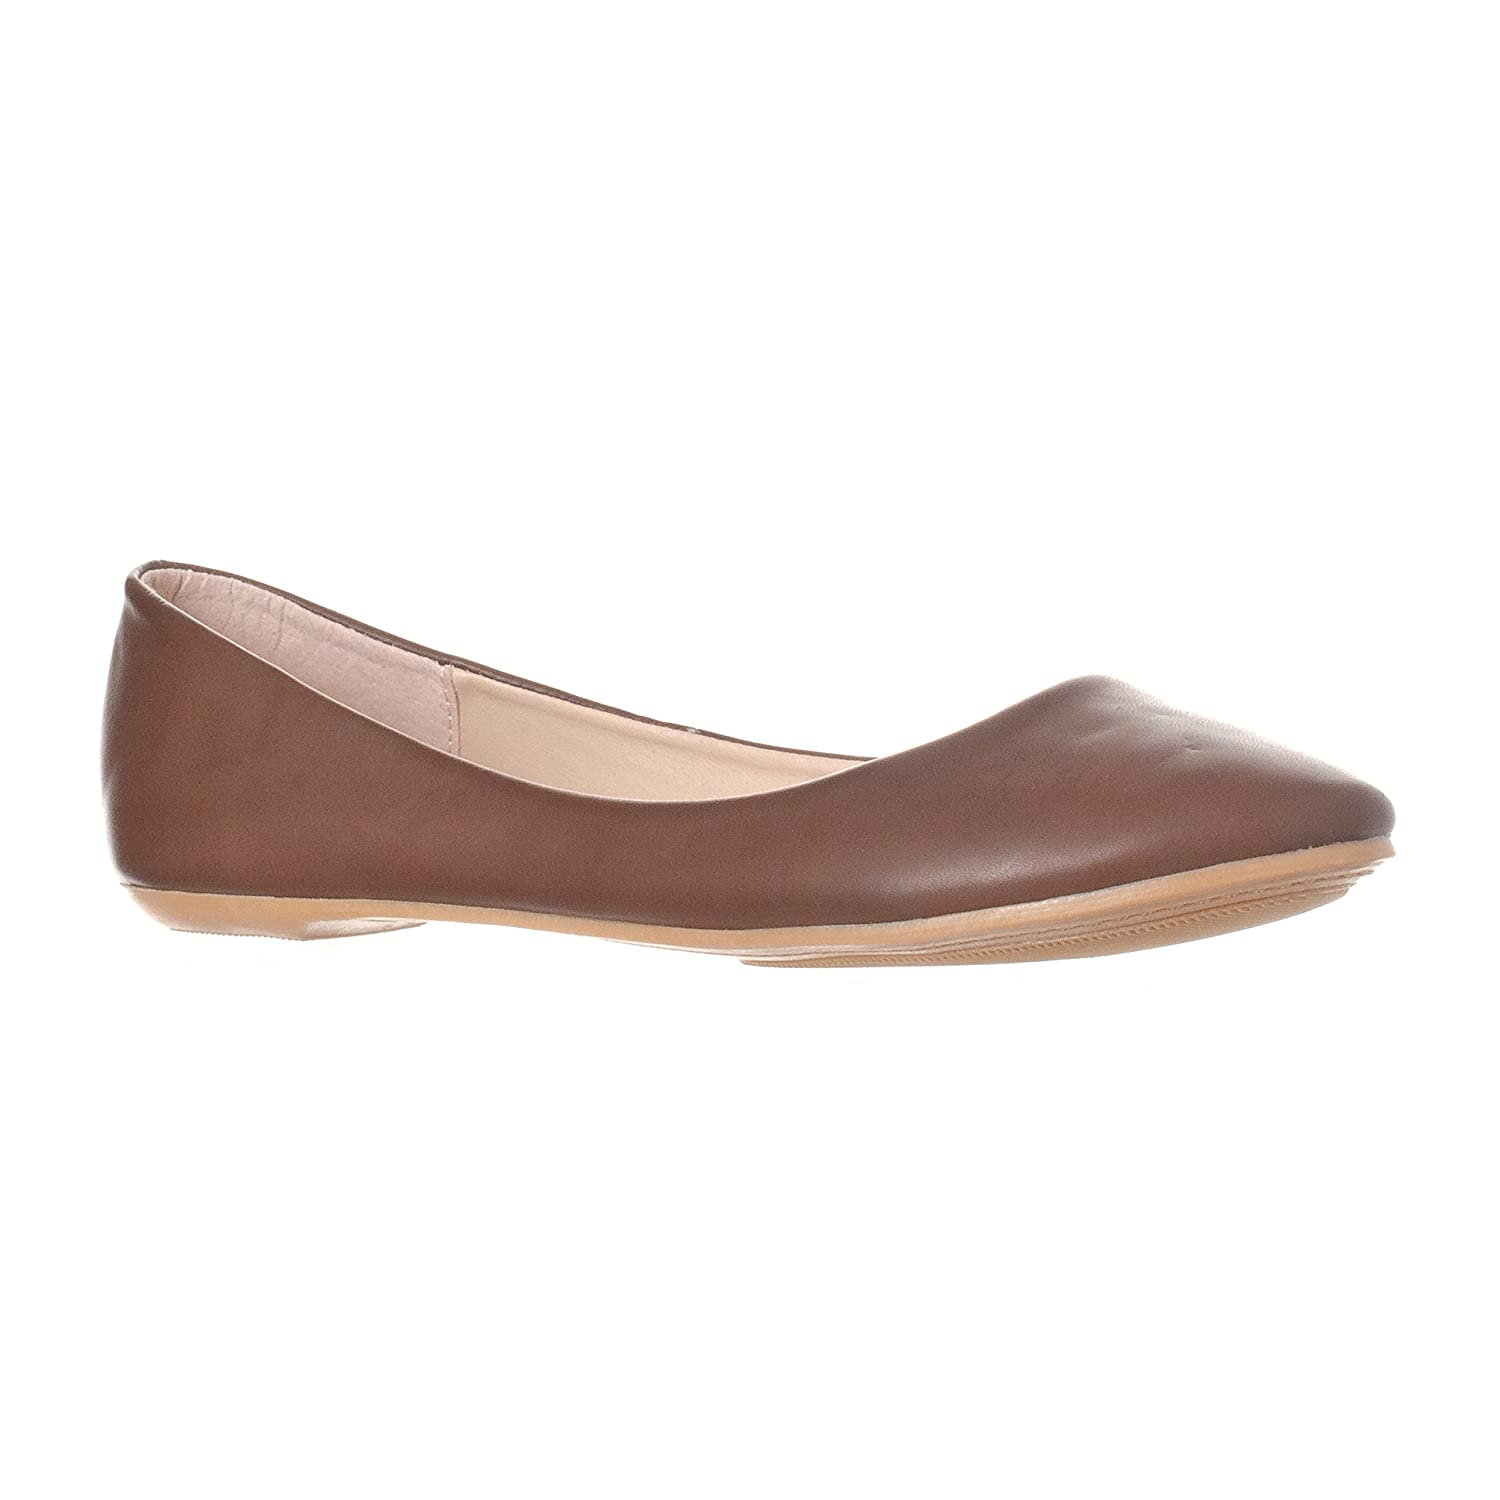 Riverberry Women's Aria Closed, Round Toe Ballet Flat Slip On Shoes B017CC90RC 8.5 M US|Coffee Pu